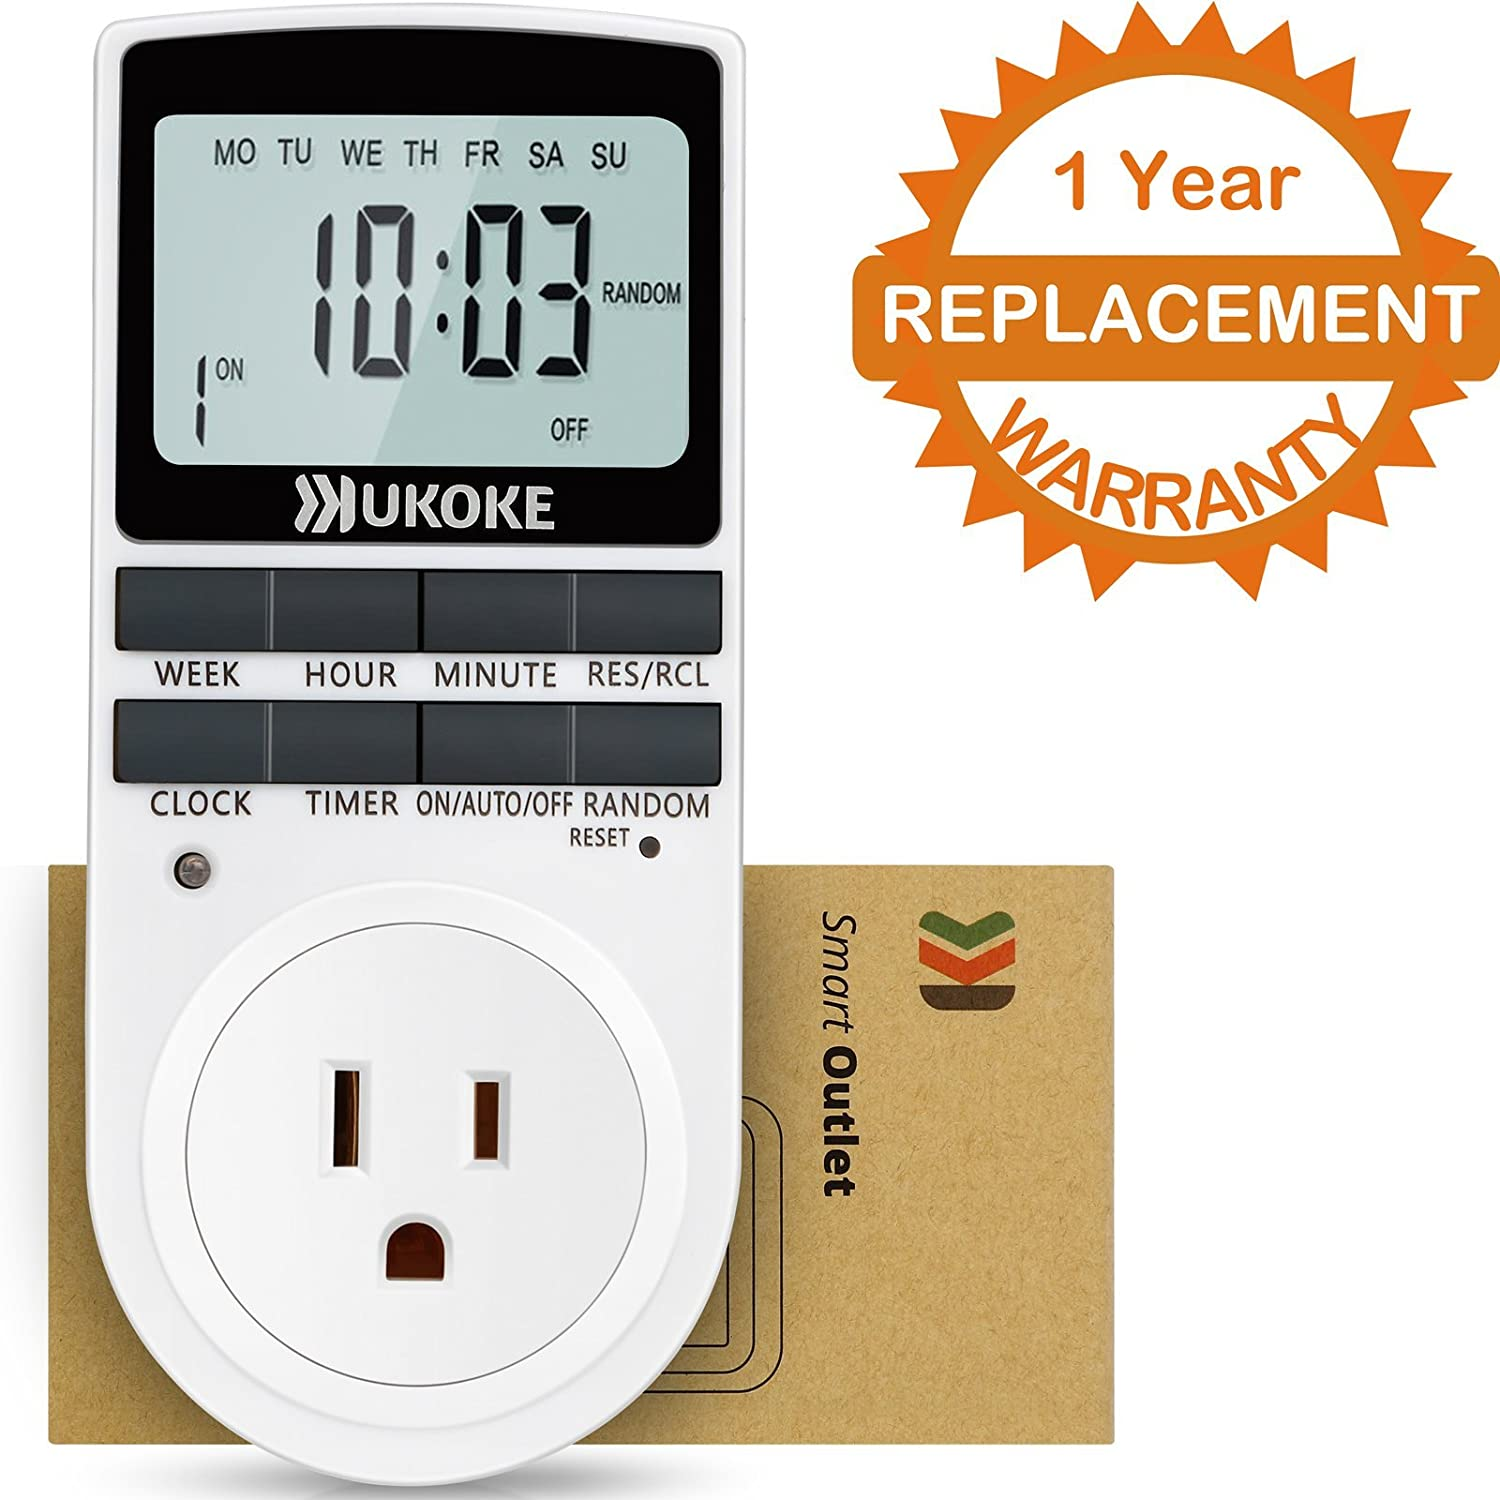 UKOKE UTM01WFBA UTM01W, Appliance, 7 Day Weekly Programmable Outlet, Wall Switch, Digital Light, Plug-in Timer for Electrical Outle (1 Pack)